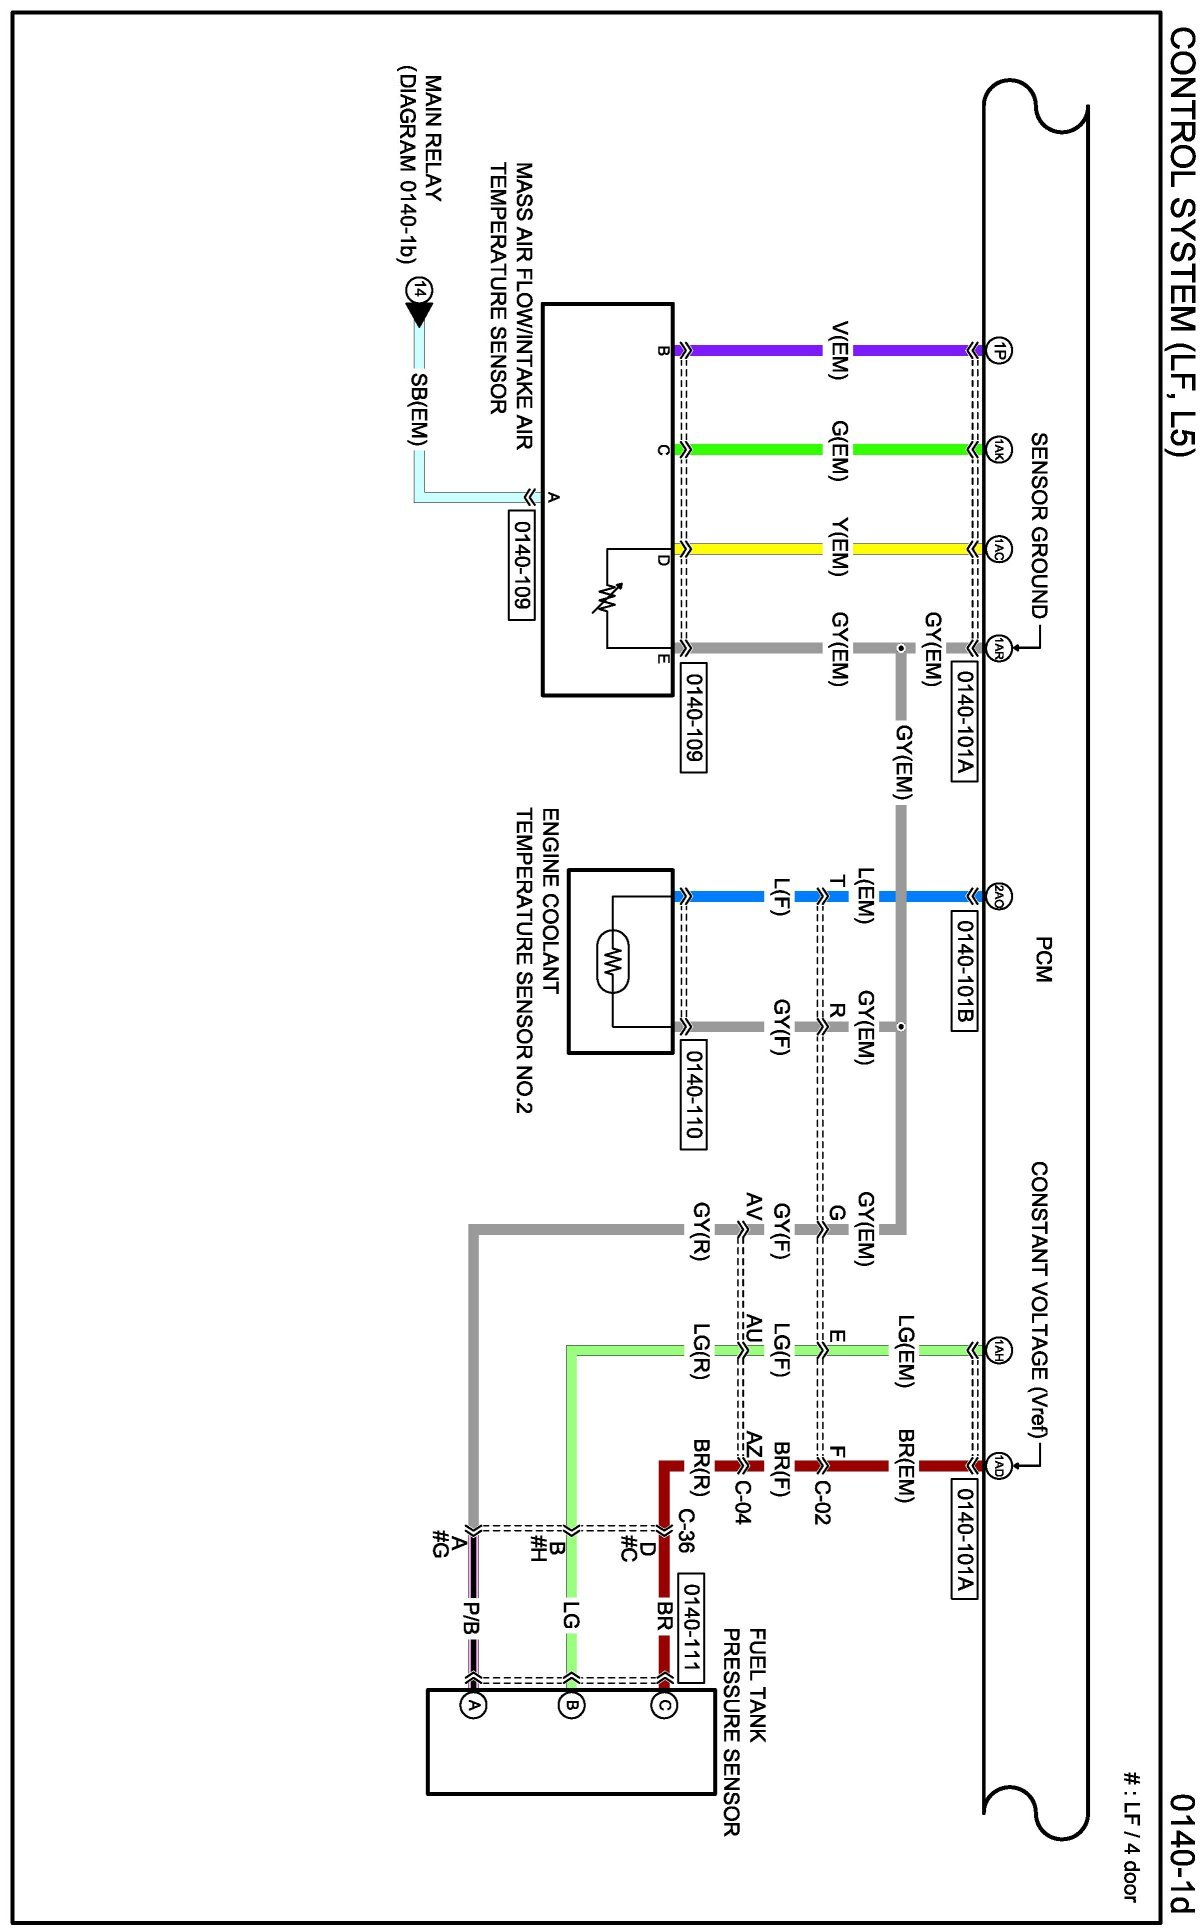 mazda wiring schematic mazda image wiring diagram 2010 mazda 3 wiring diagram stereo wiring diagram and hernes on mazda 3 wiring schematic